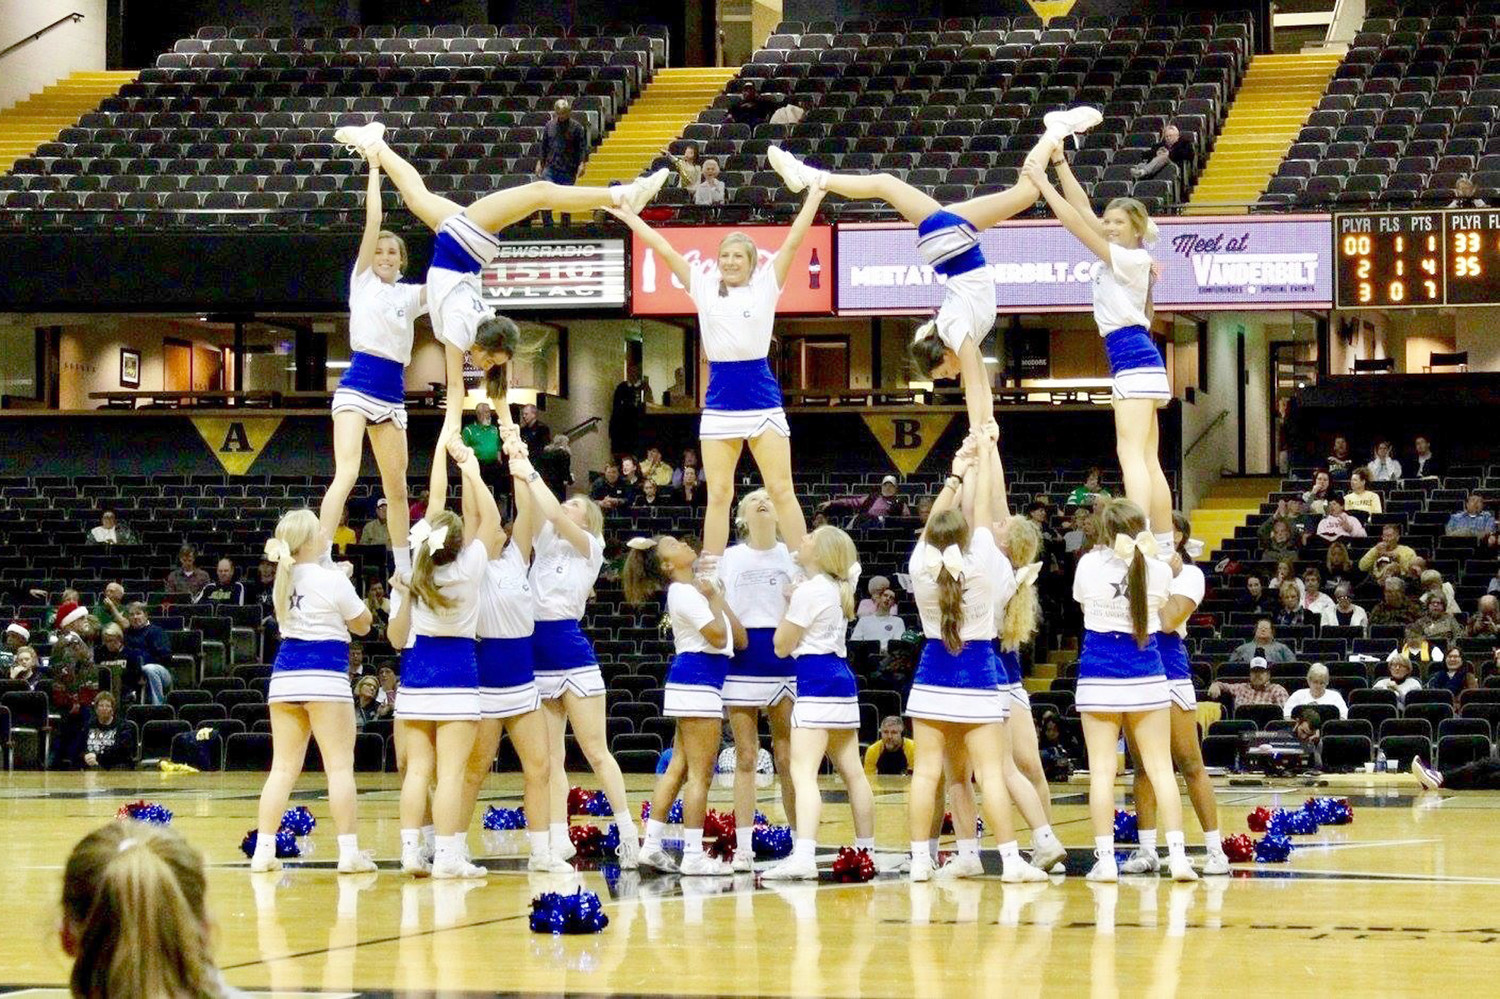 VARSITY CHEERLEADERS from Cleveland High School perform during a recent basketball game at Vanderbilt University. The squad got to help fill in for the Commodore's squad during Christmas break.